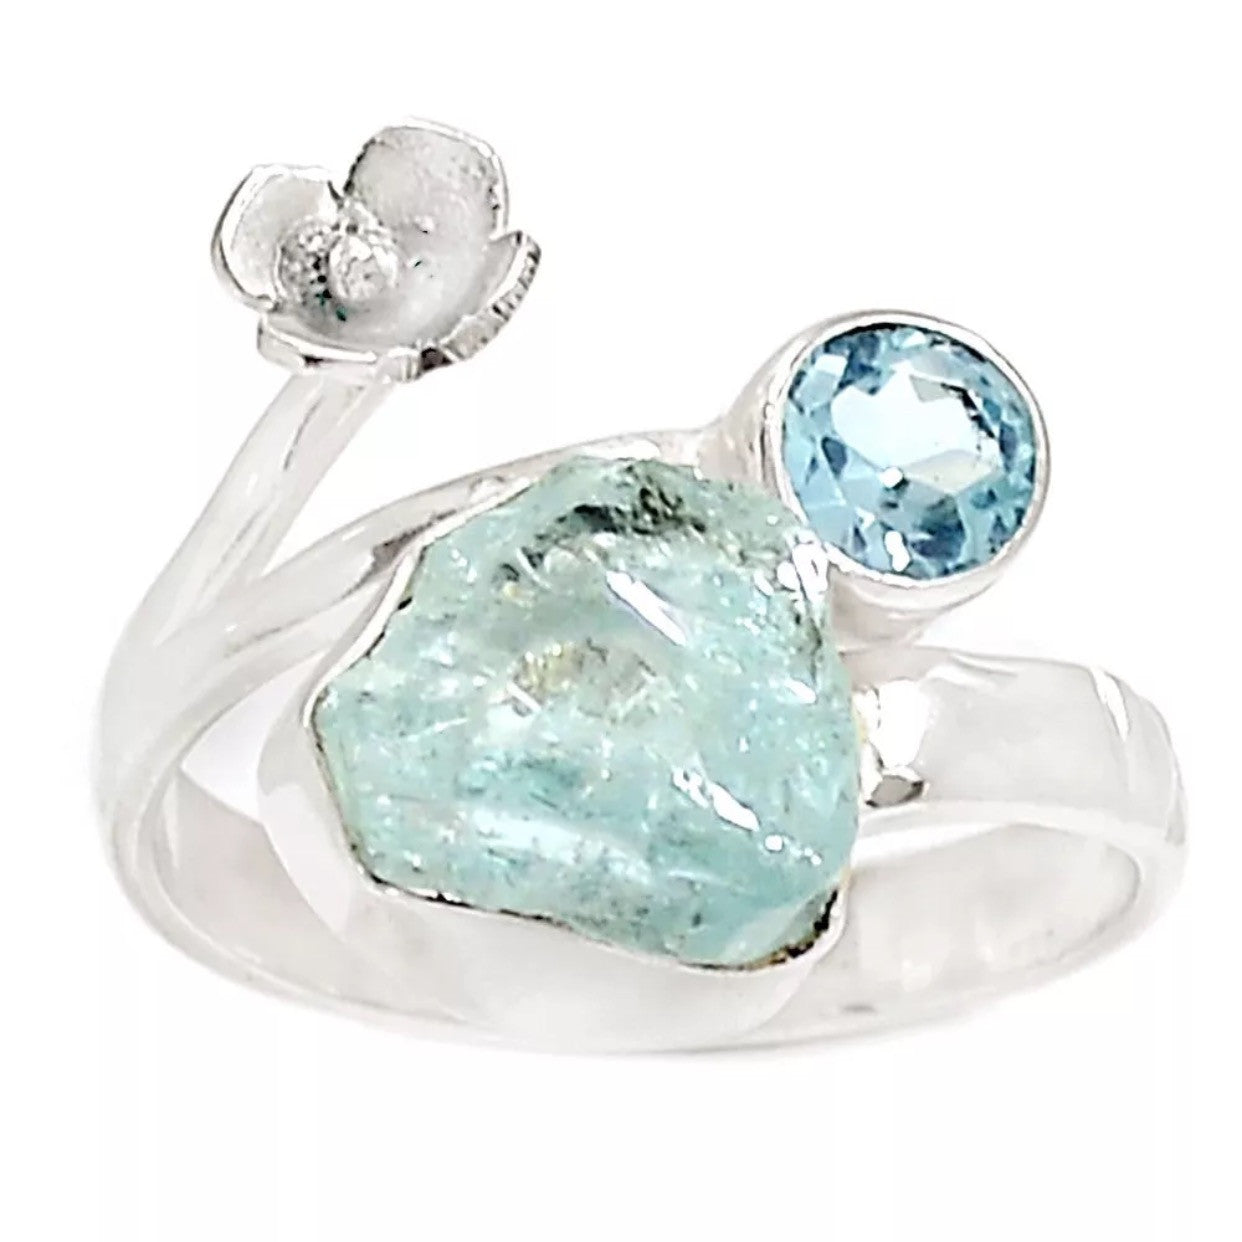 Aquamarine Rough & Blue Topaz Floral Sterling Silver Ring - Keja Designs Jewelry